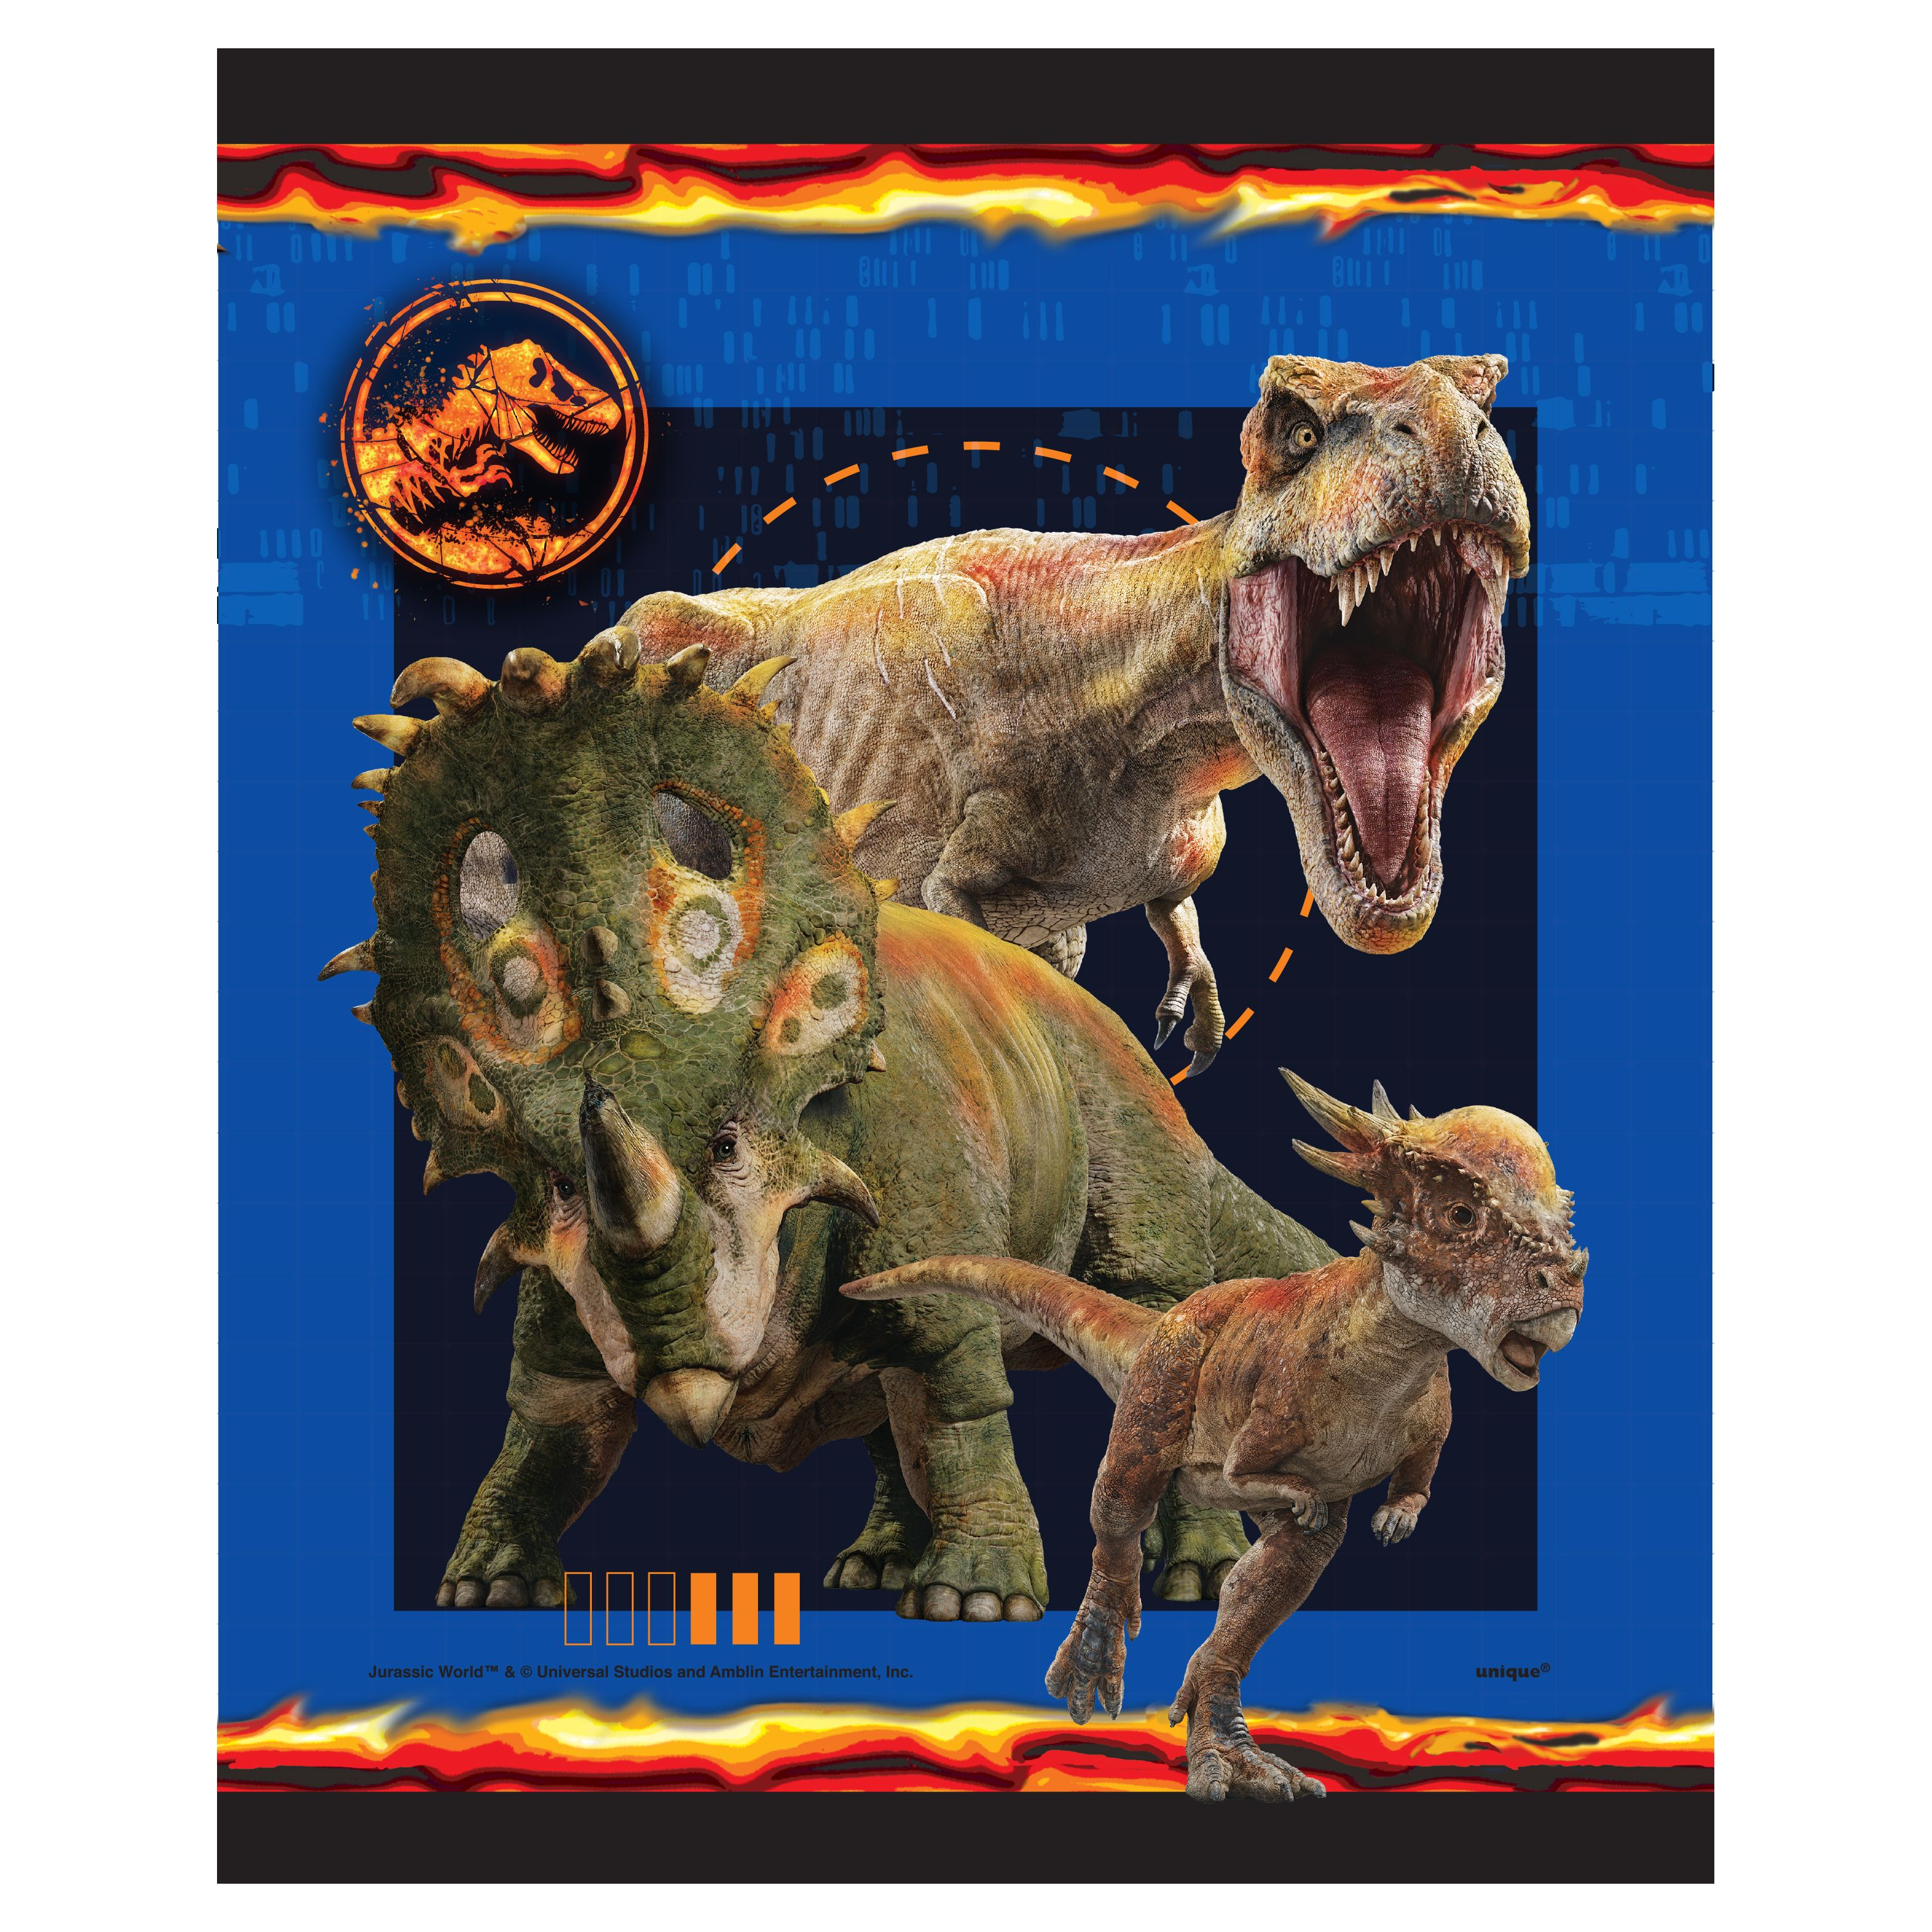 Plastic Jurassic World Goodie Bags, 9 x 7in, 8ct